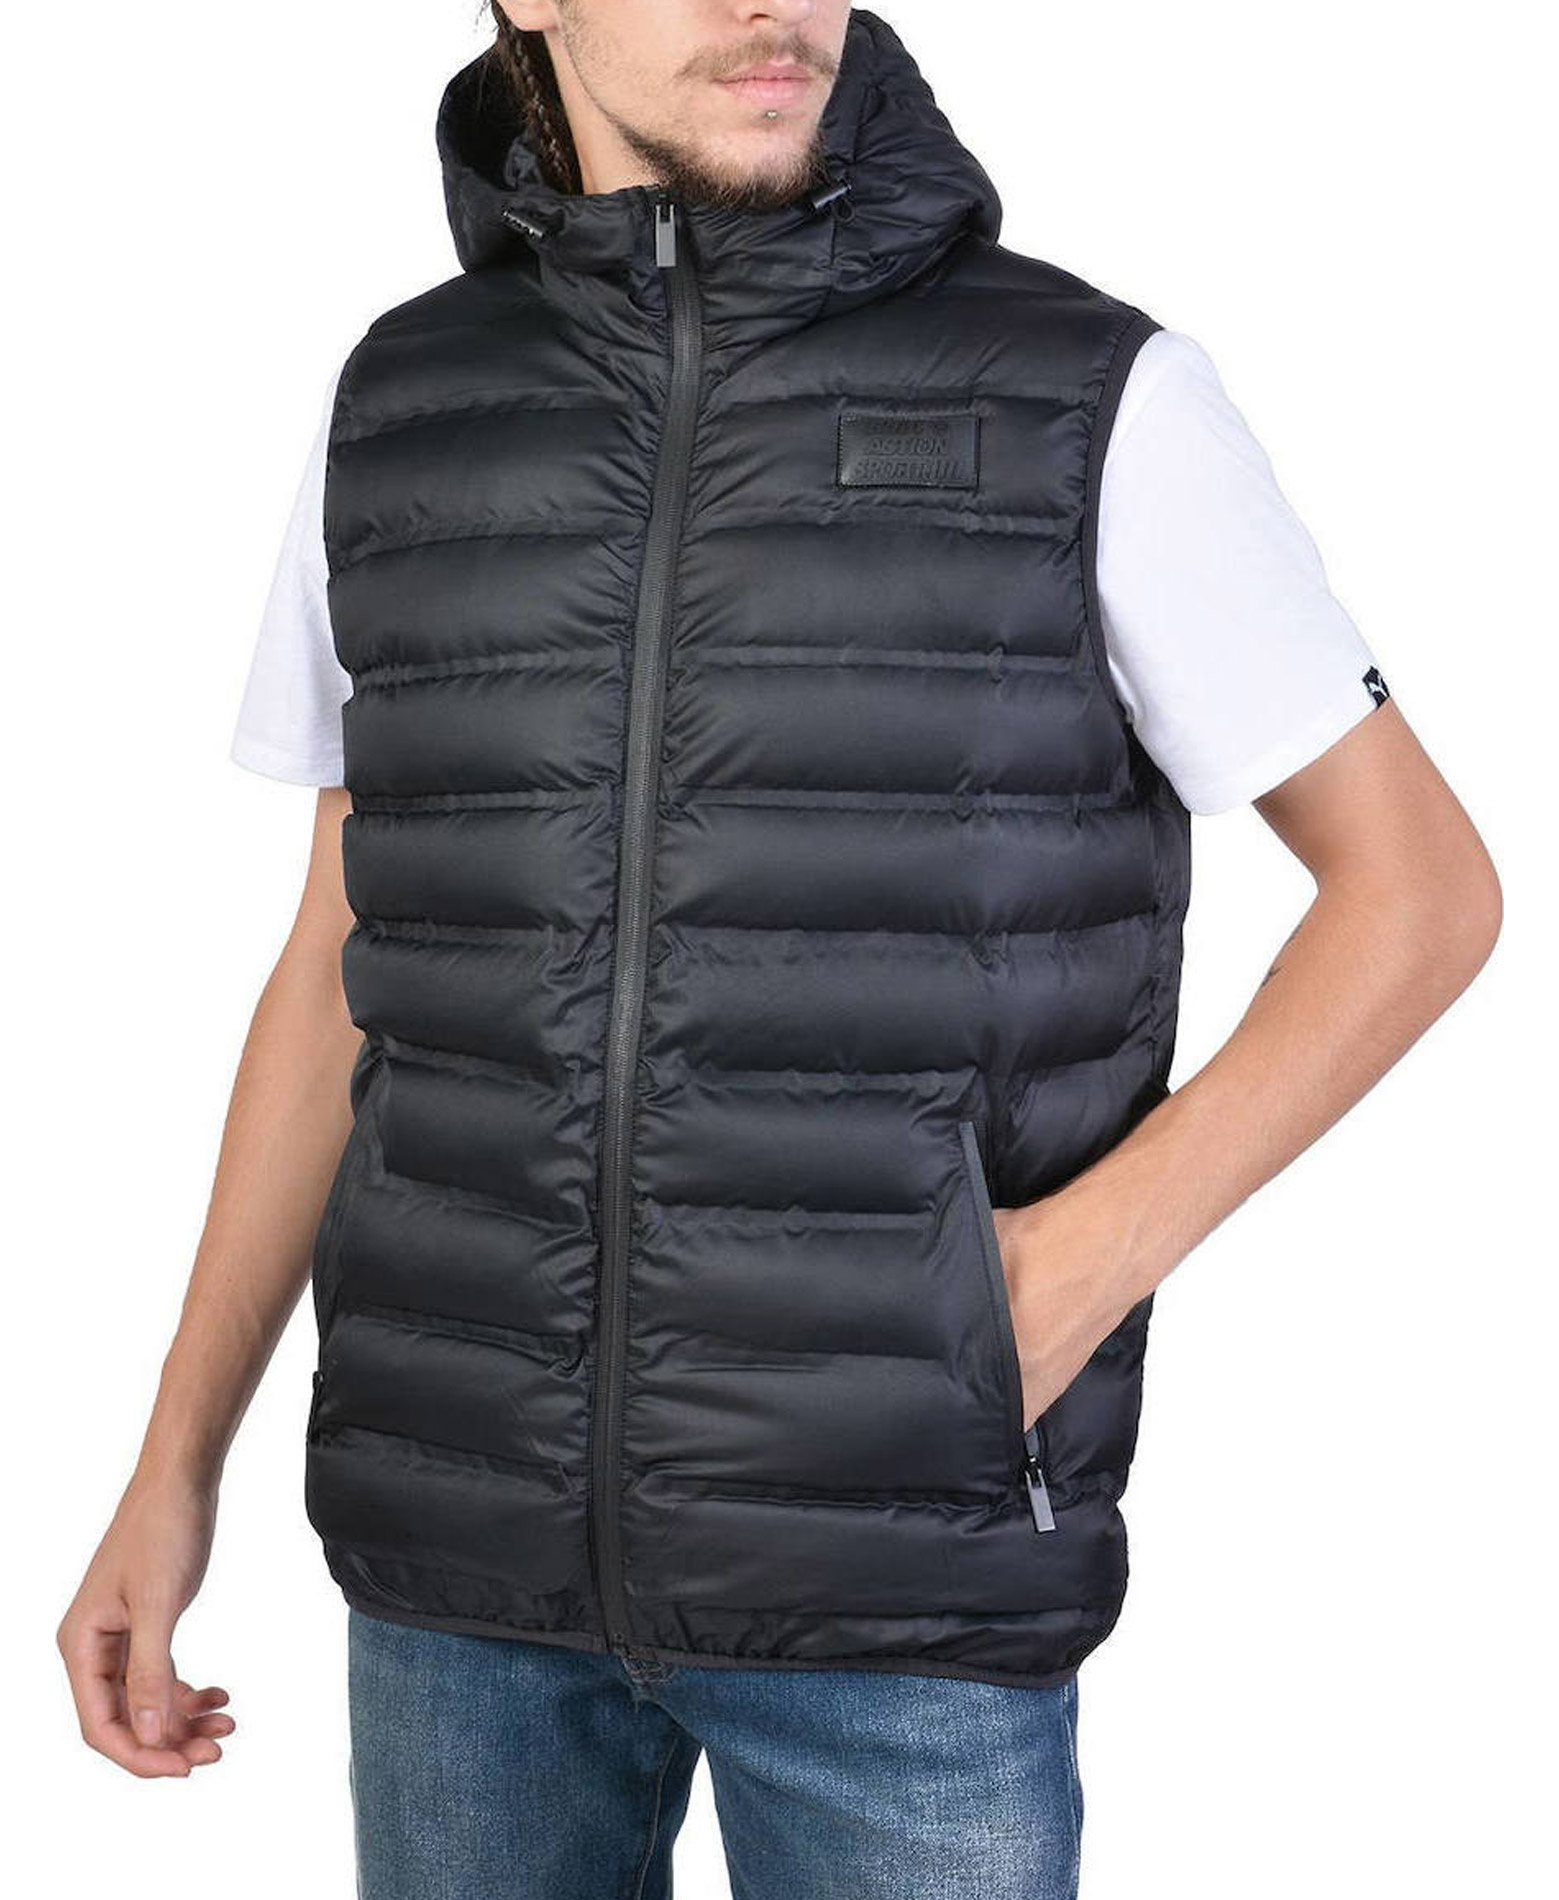 BODY ACTION ZIP-THROUGH QUILTED VEST WITH HOOD 073925-01-01 Μαύρο